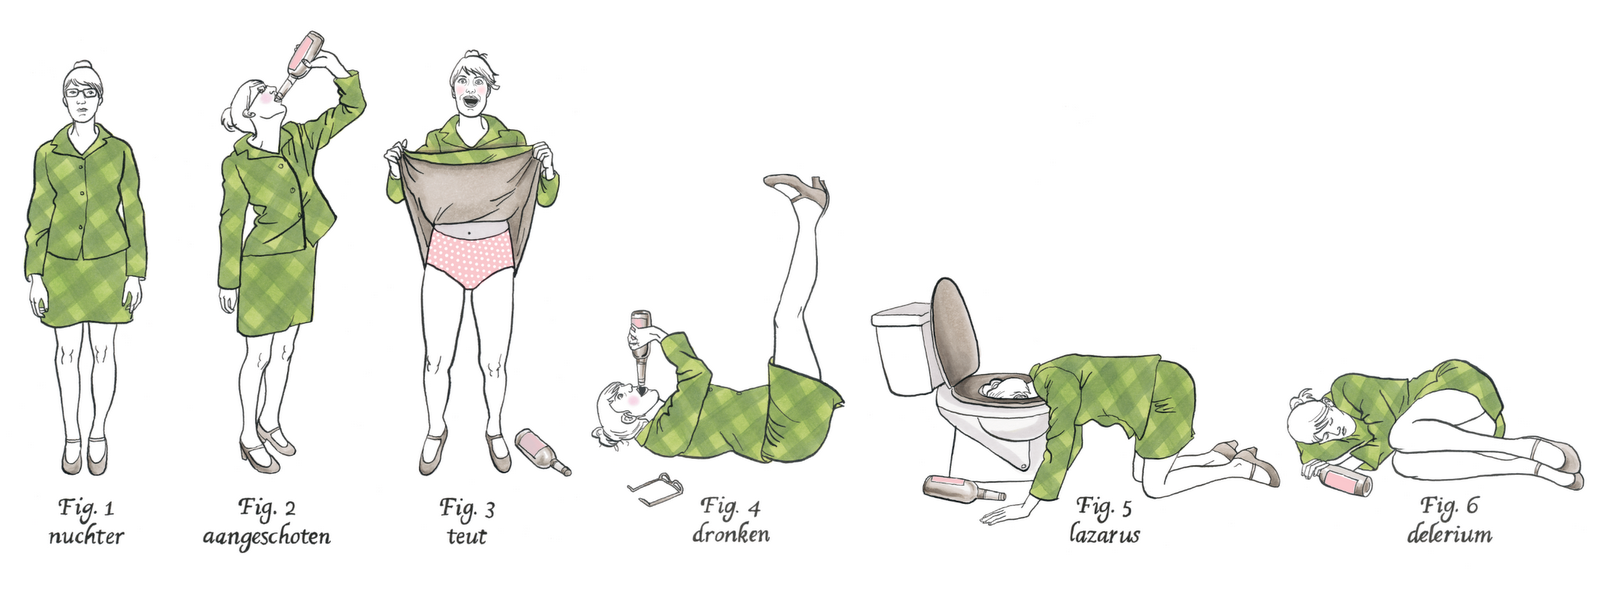 Evalien the stages of drunkenness